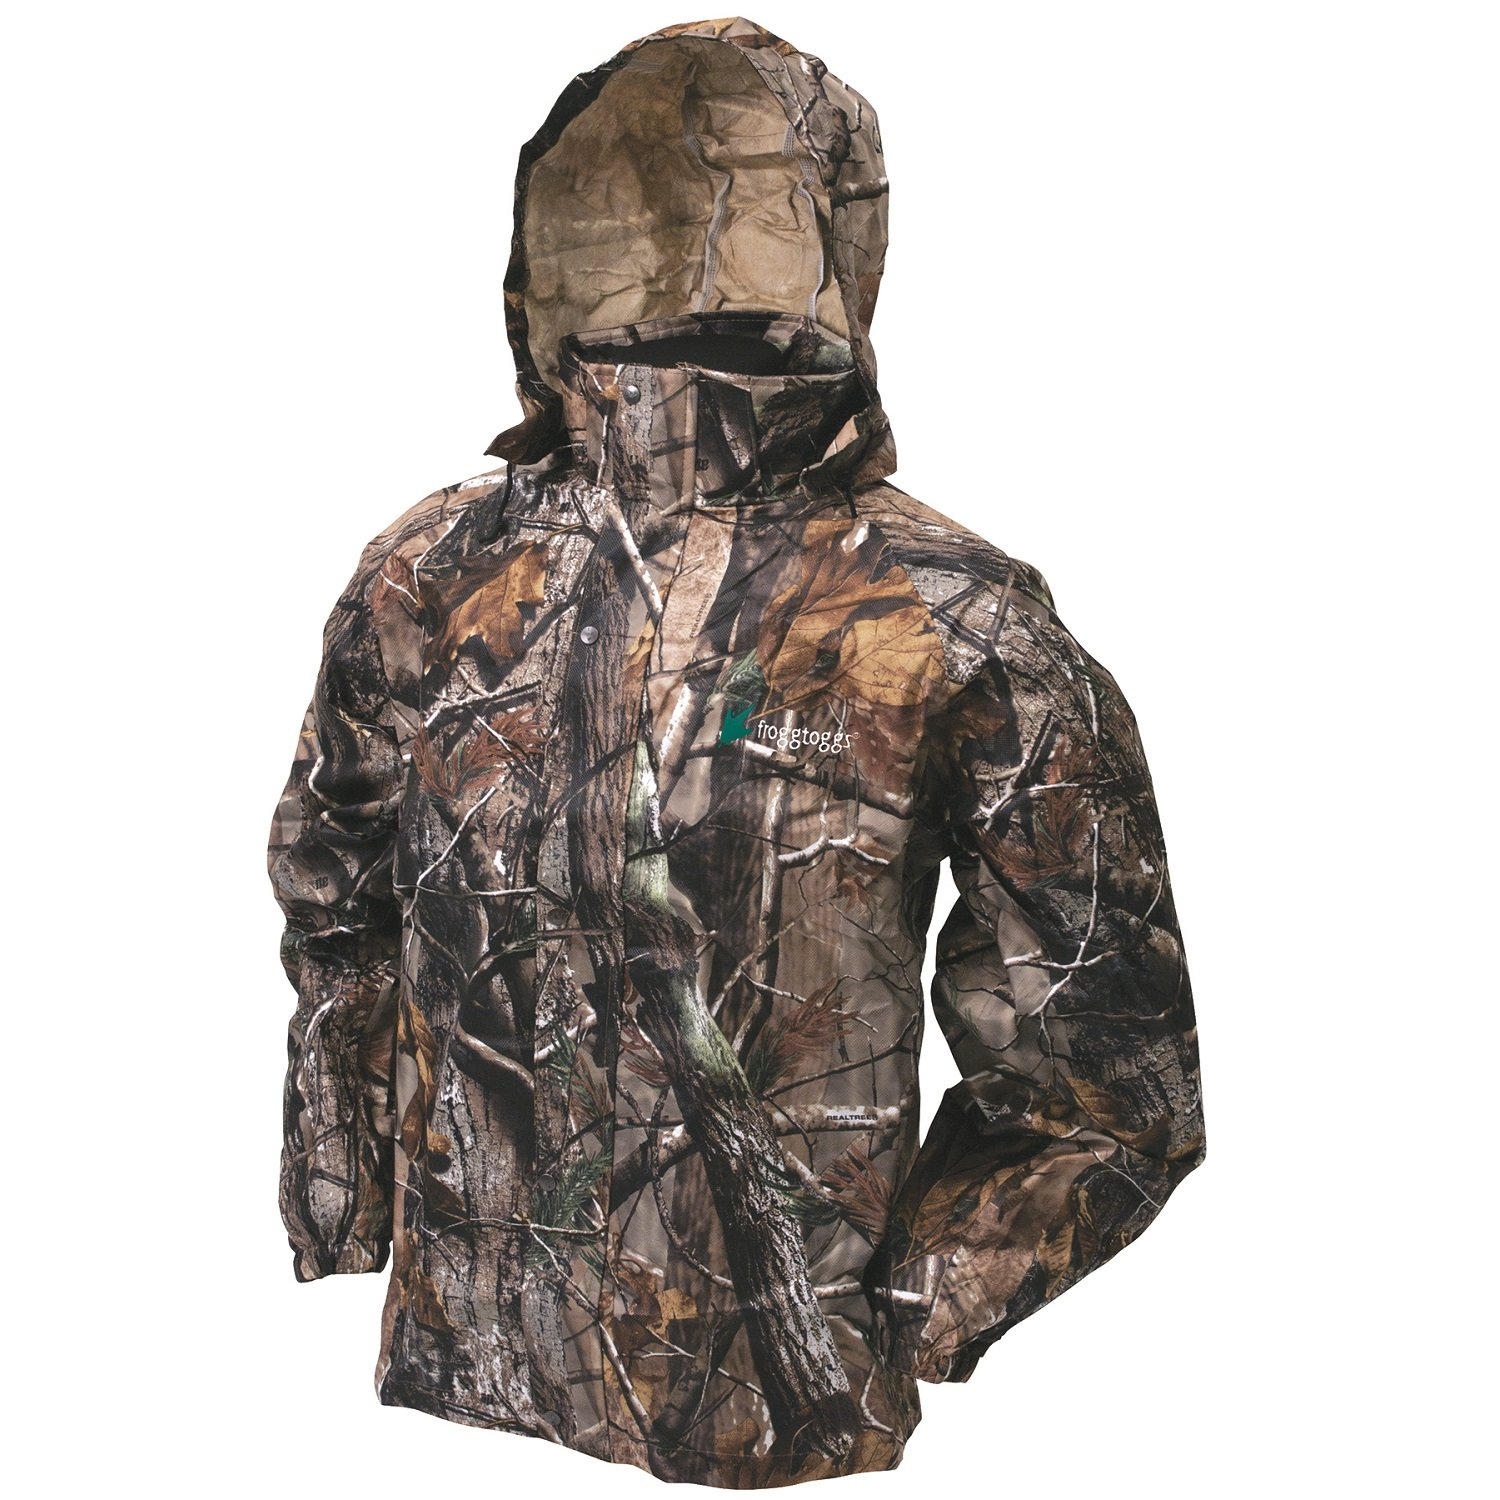 cee575af2b5c8 Top 10 wholesale Realtree Camo Hunting Pants. Wholesale clothing